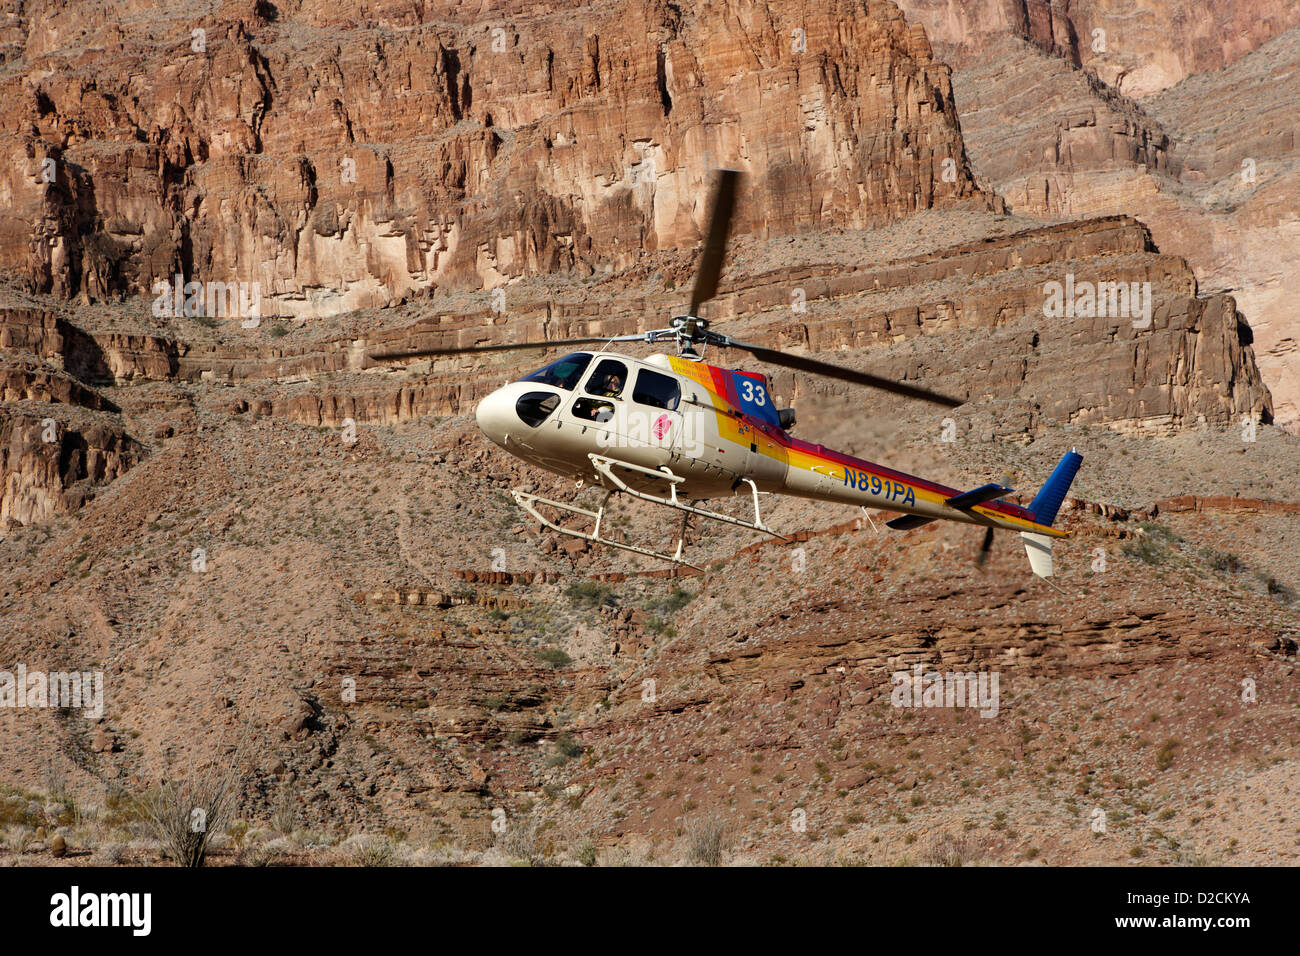 papillon helicopter tours coming in to land pad down in the Grand canyon Arizona USA - Stock Image